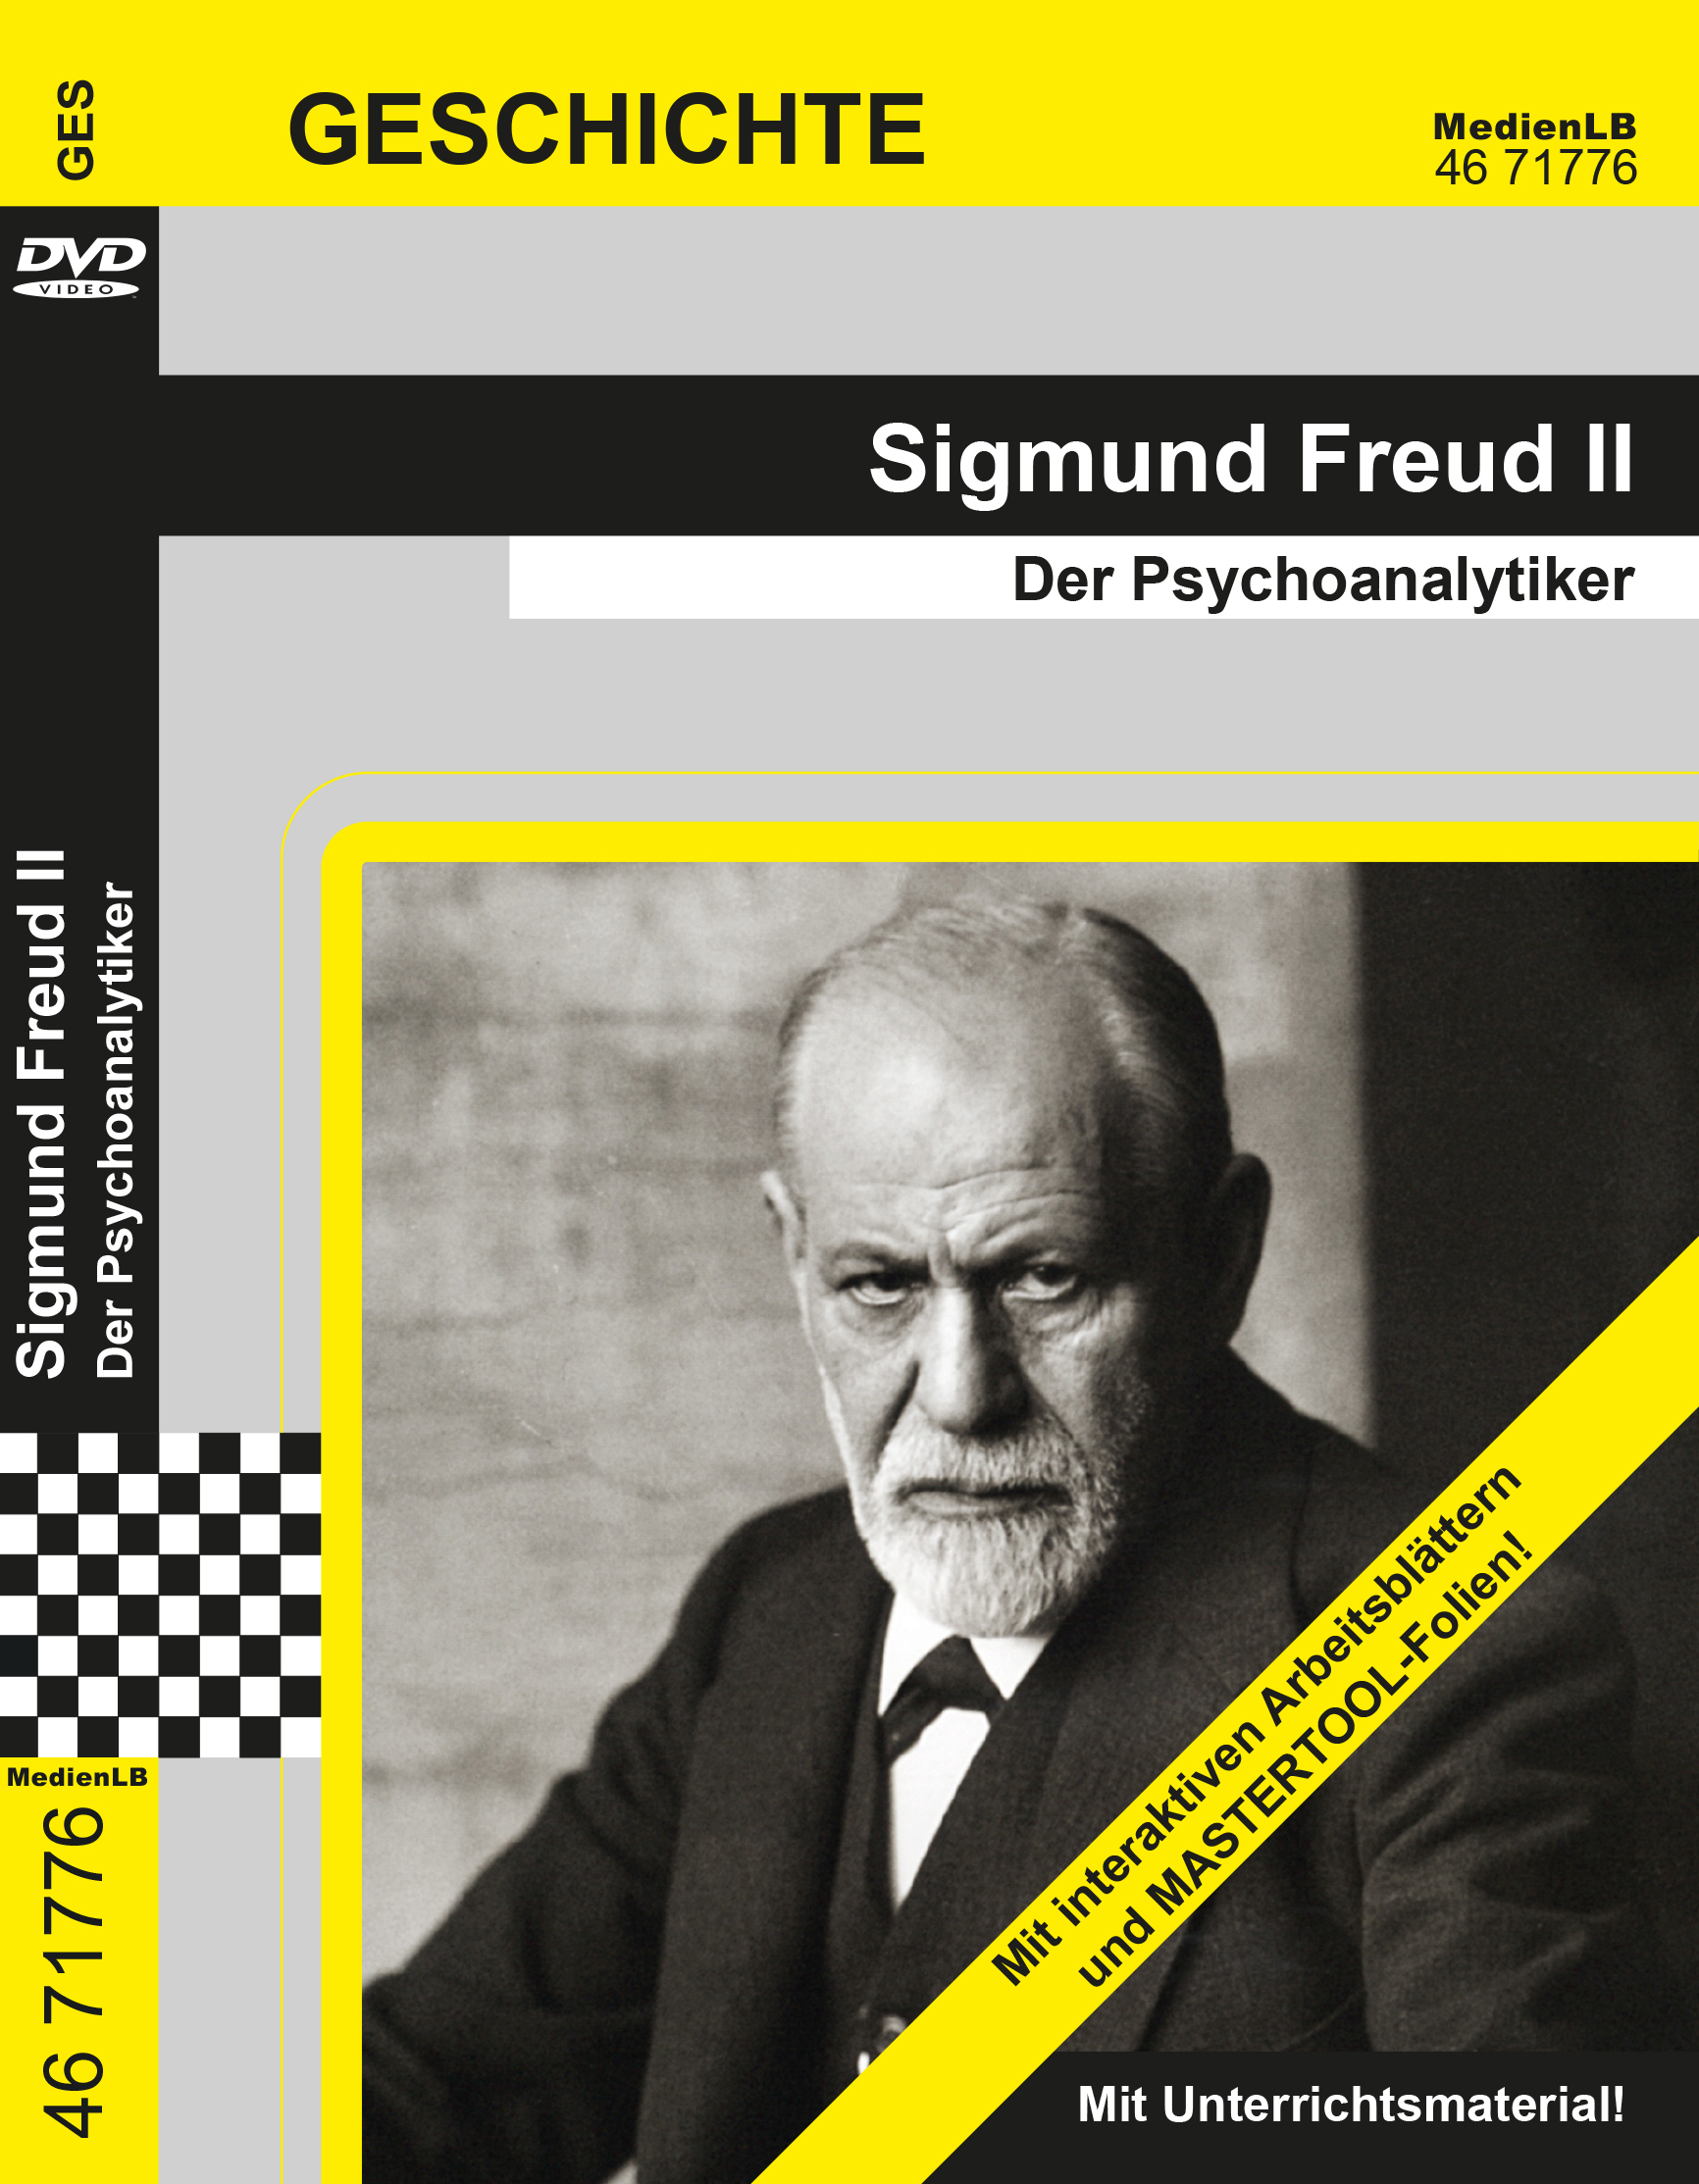 an analysis of sigmund freud contribution called psychoanalysis